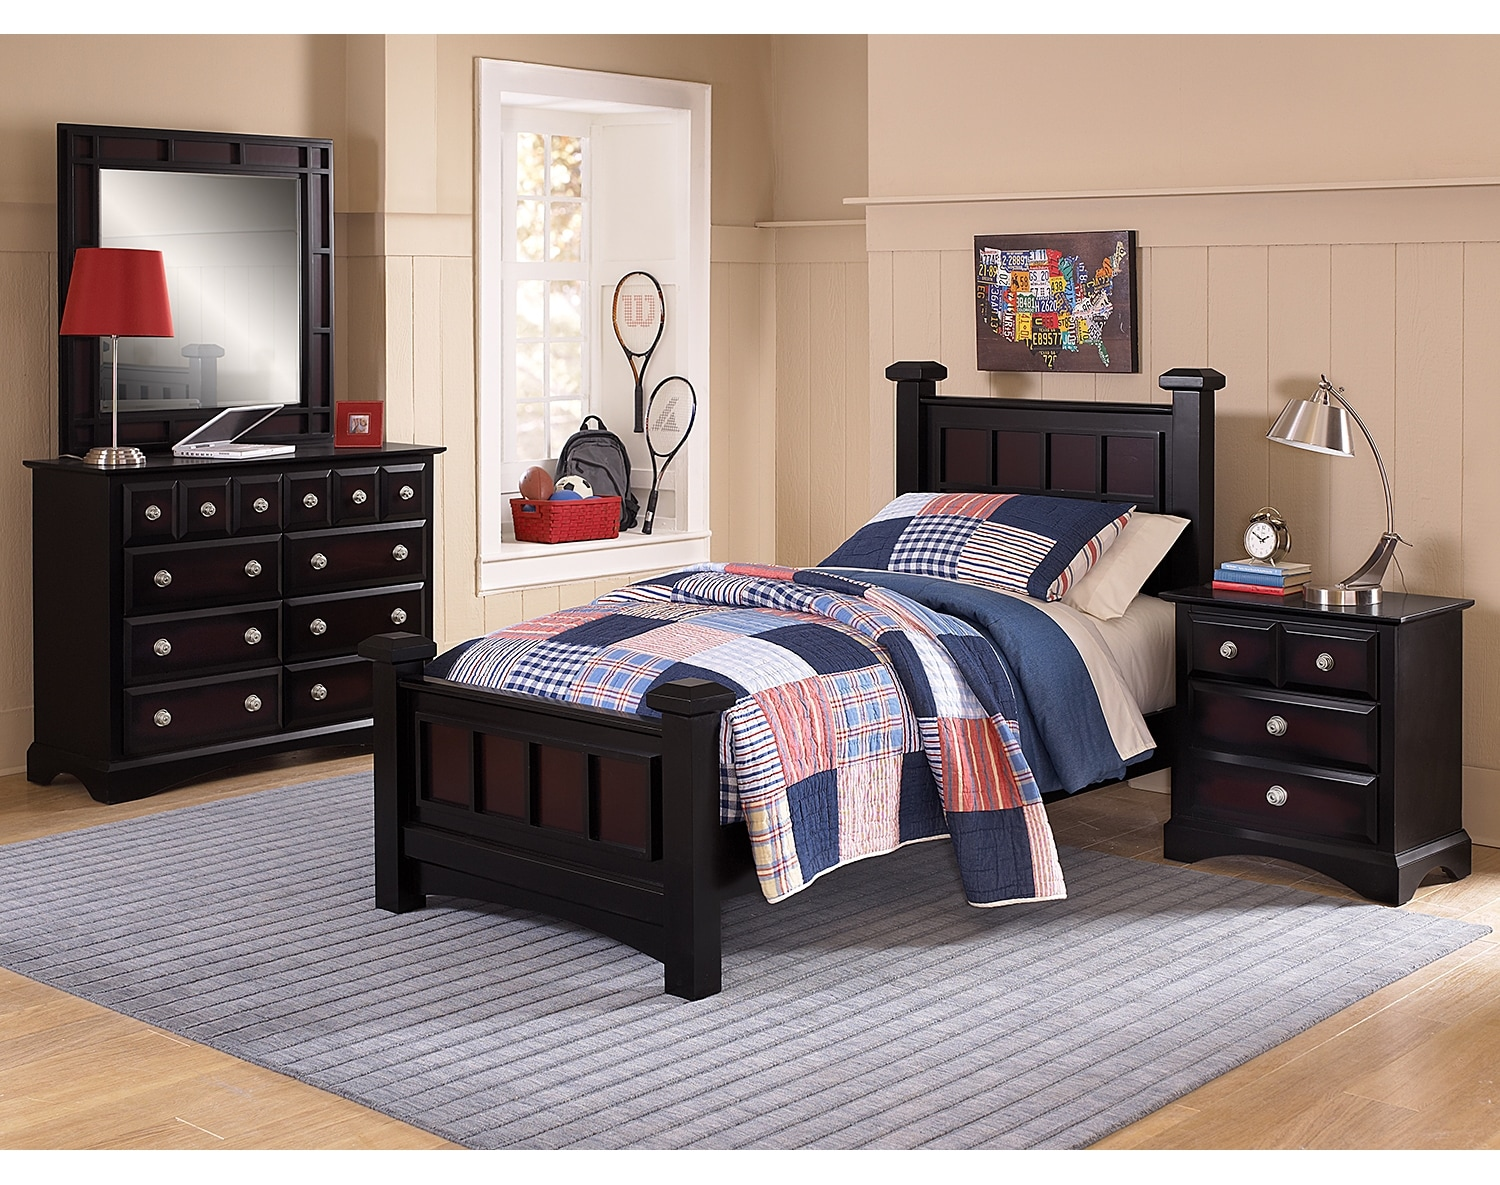 Kids Furniture - The Landon II Collection - Twin Bed